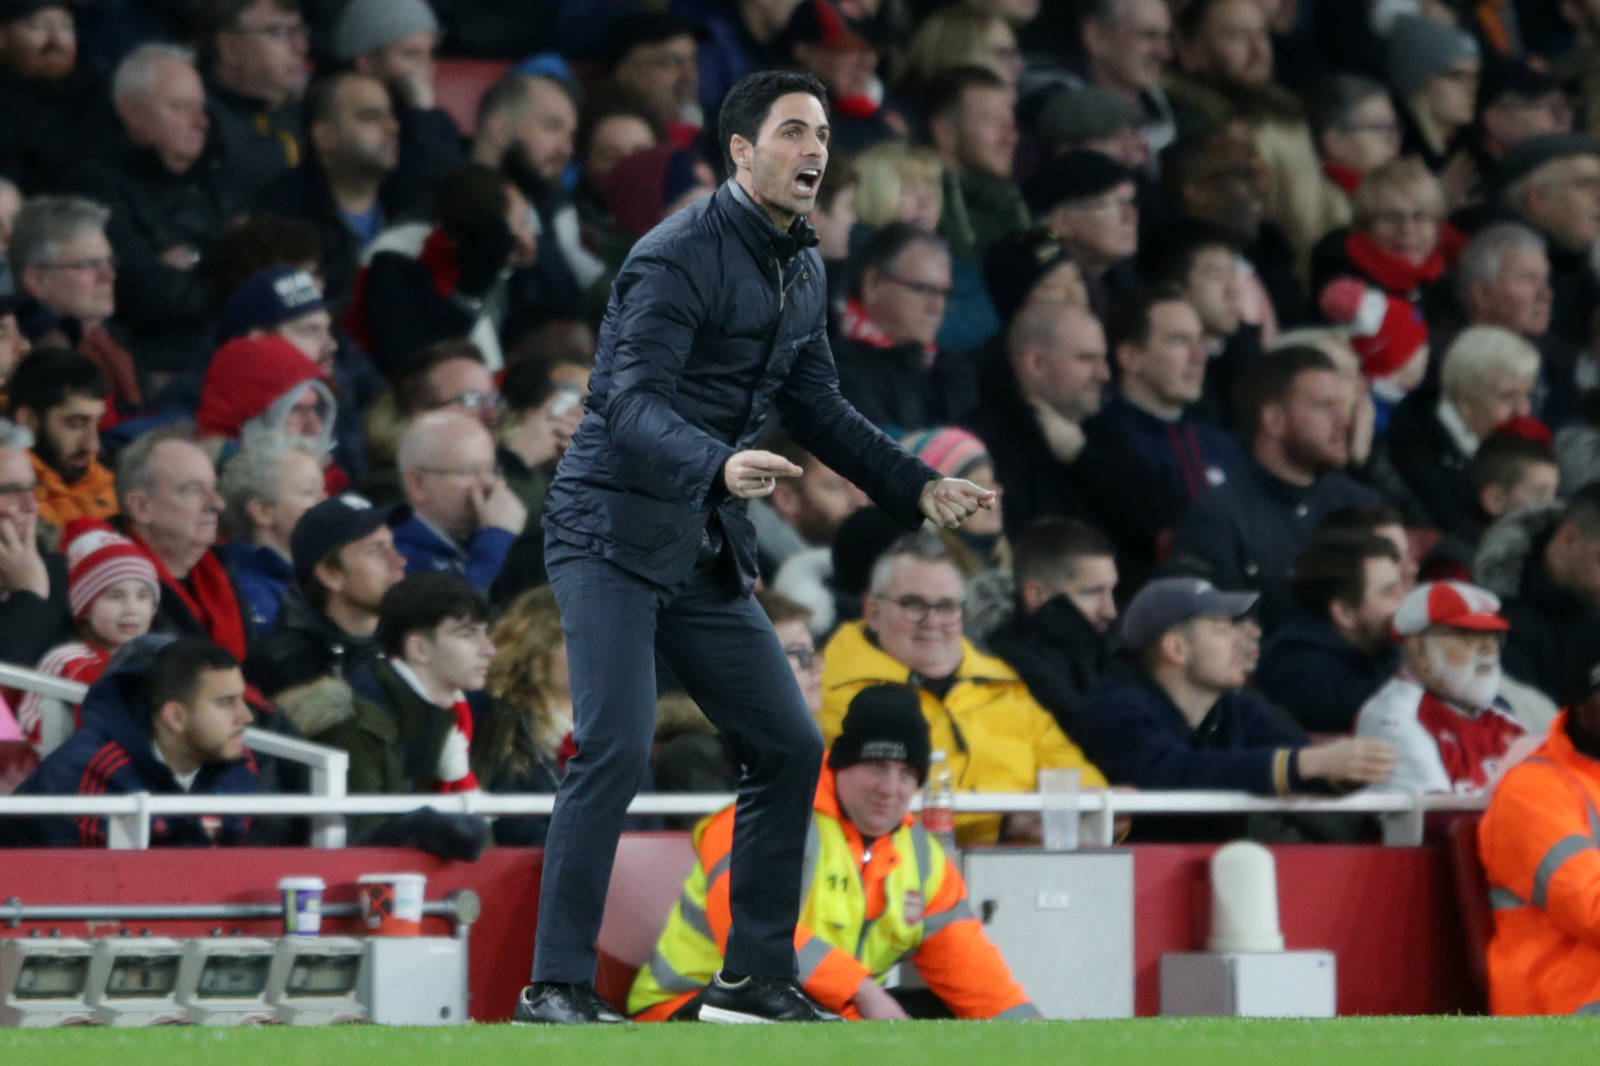 Arsenal: For all modern analysis, Mikel Arteta used old school values